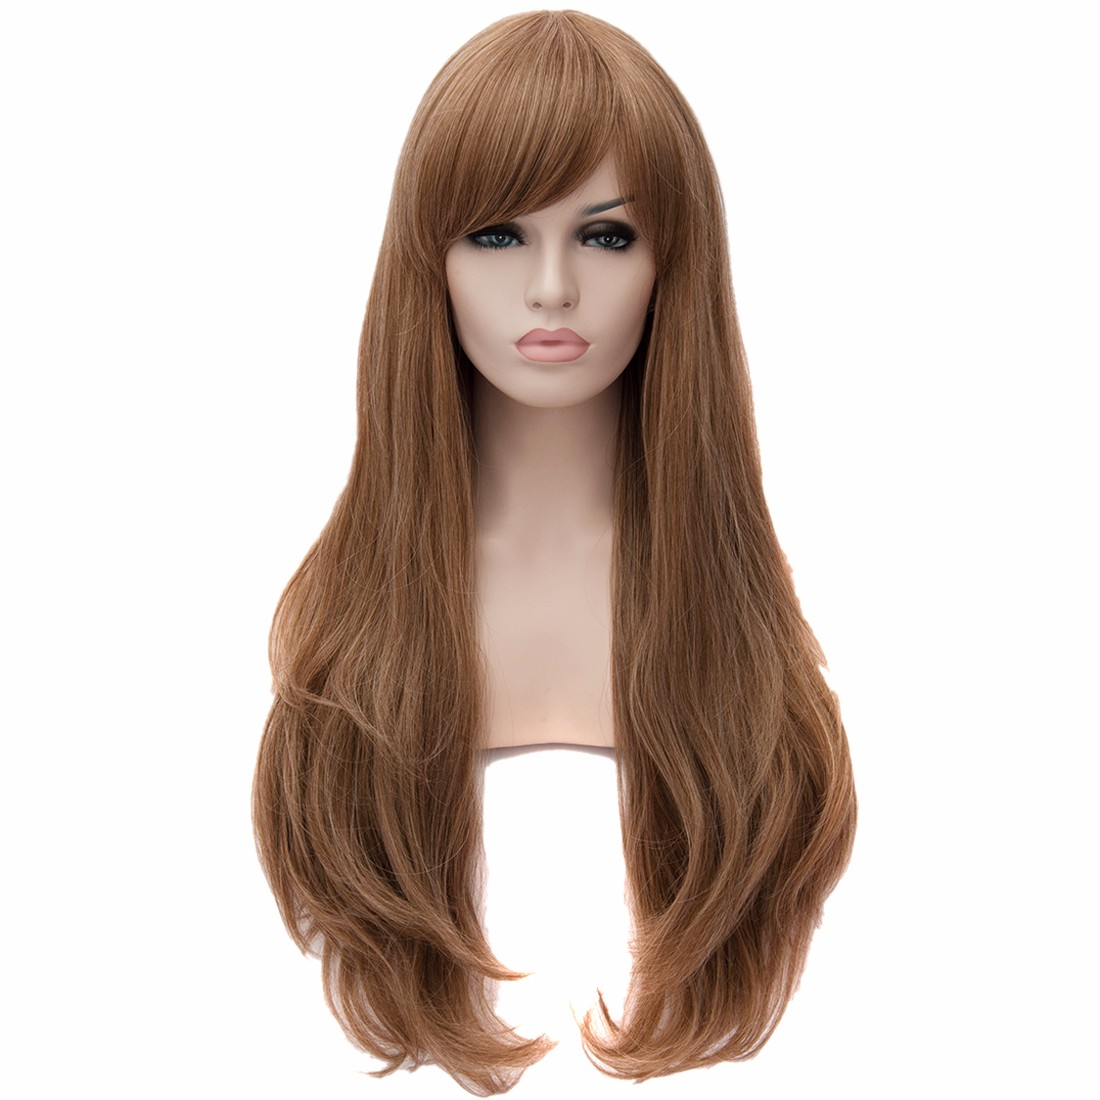 Women Natural Curly Large Wavy hairstyle Long Light Brown Side Fringe Wigs<br><br>Aliexpress